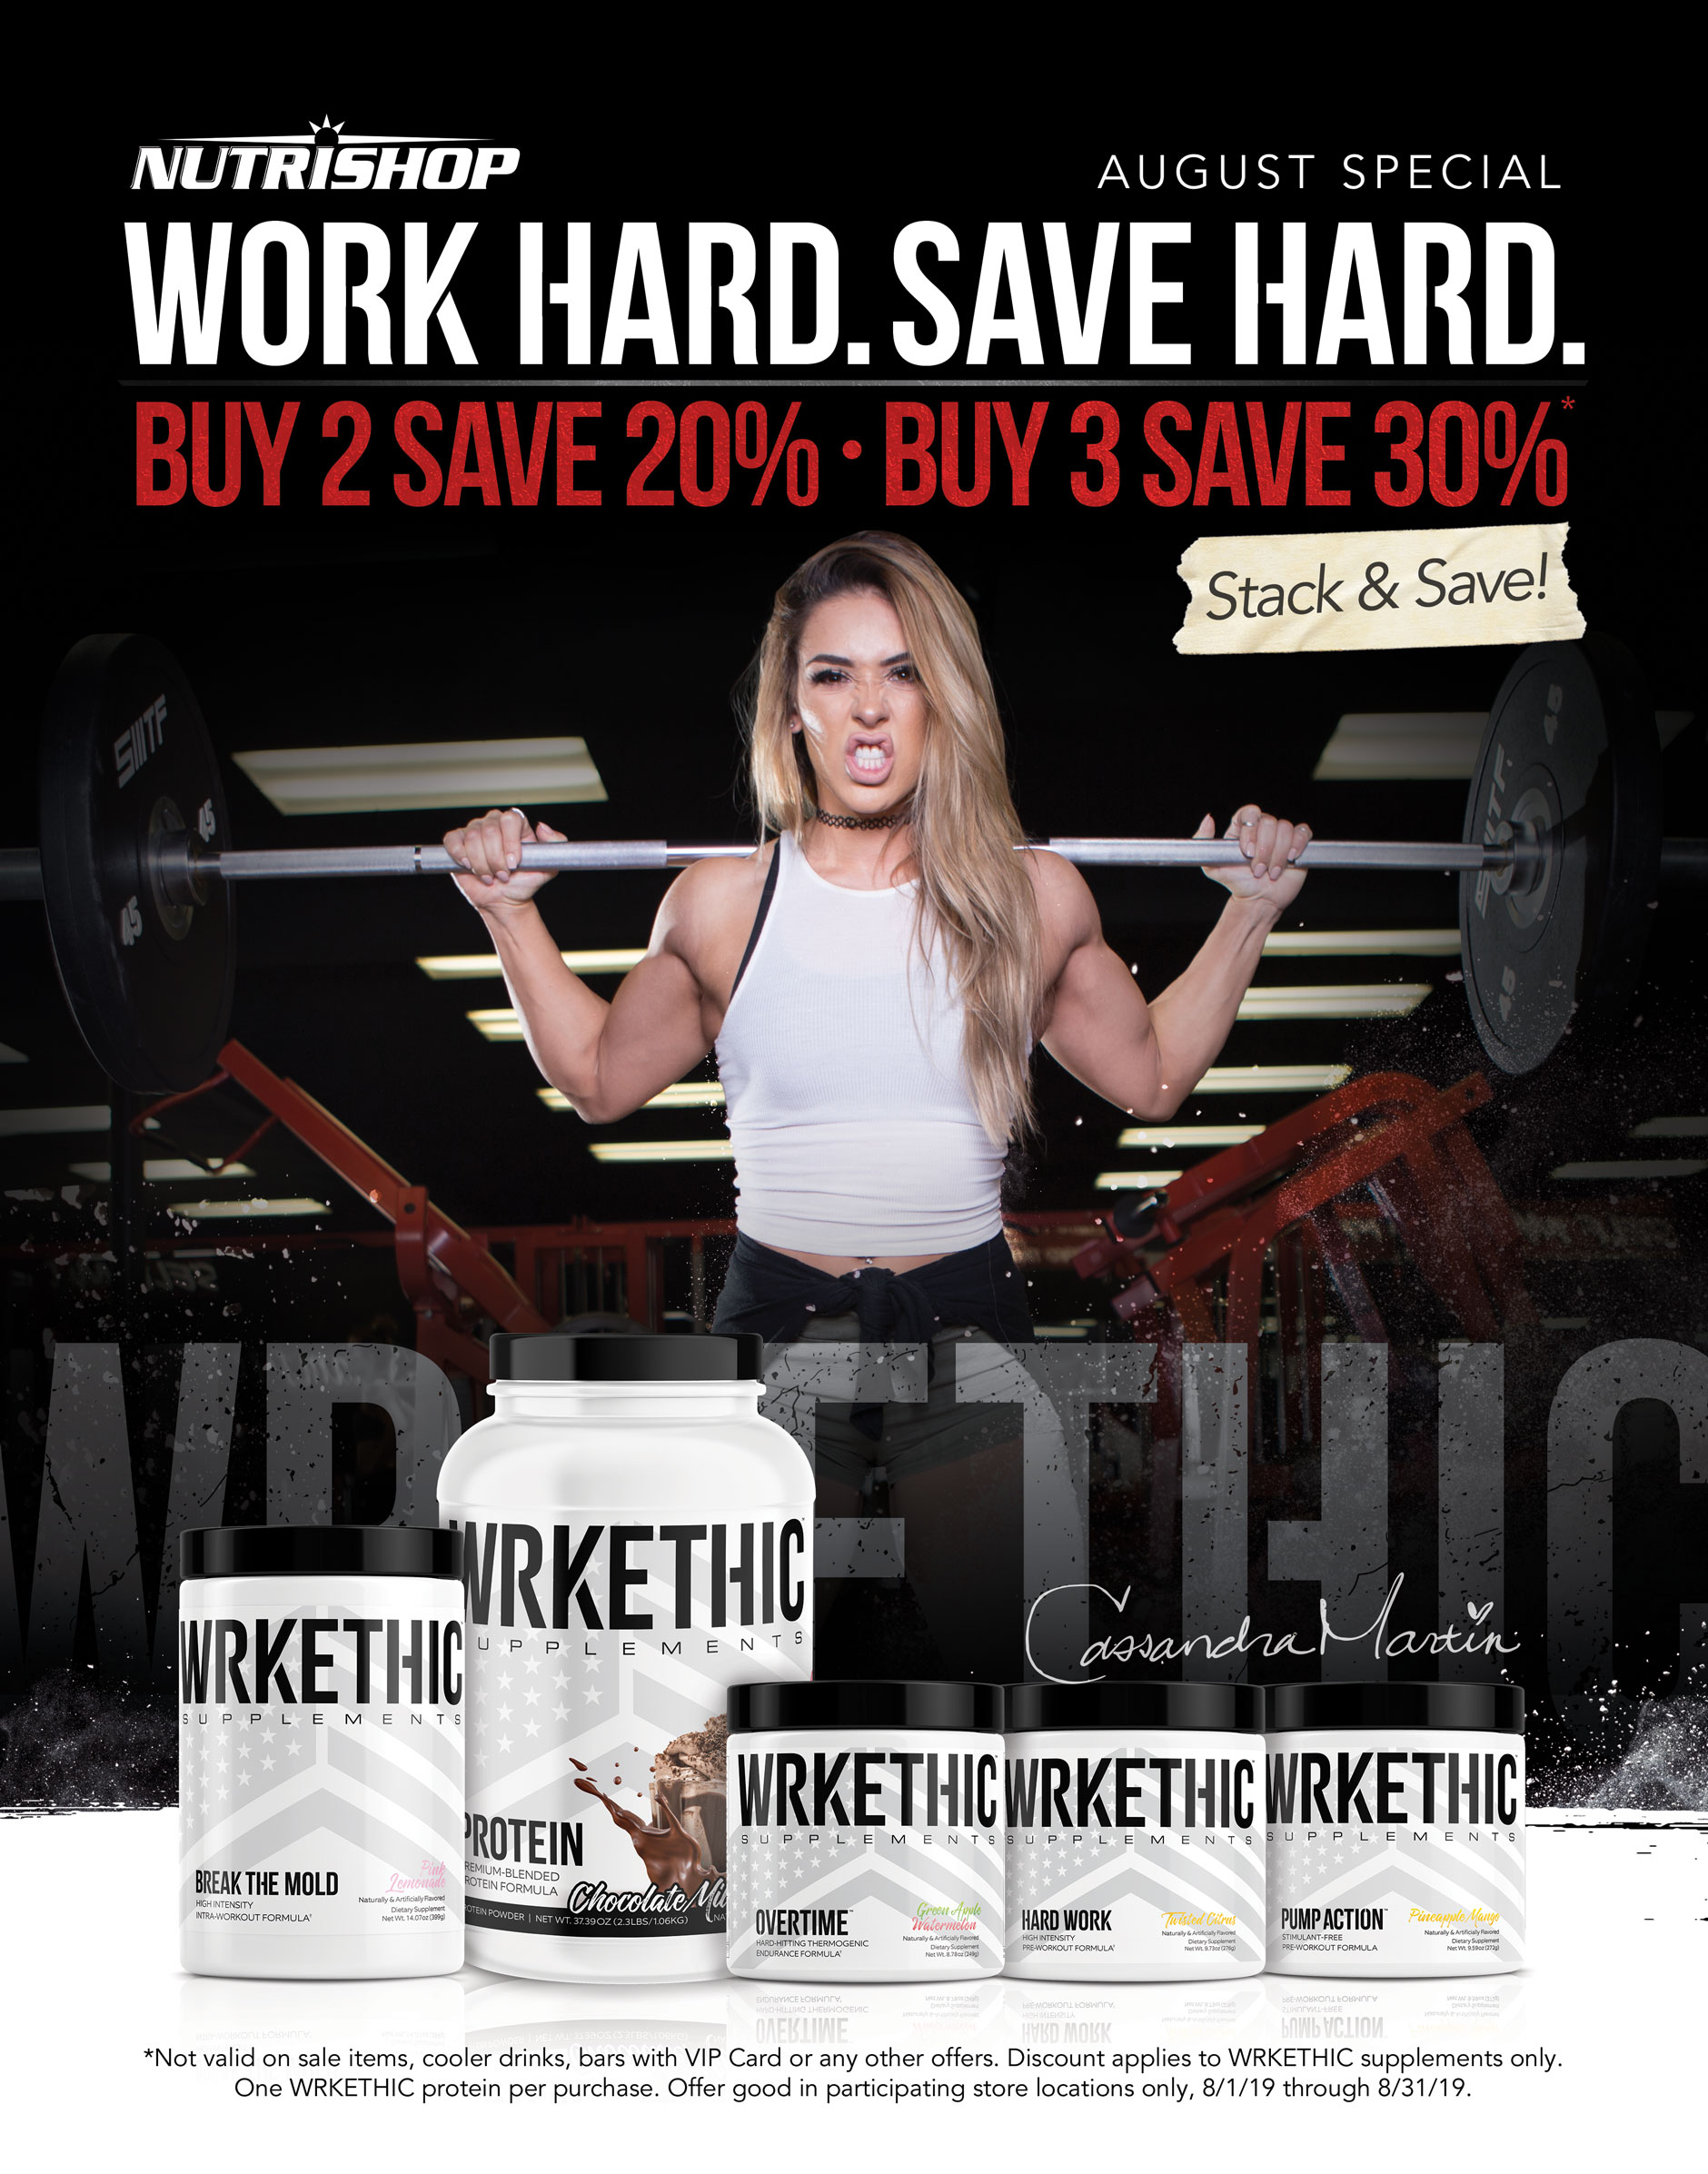 Nutrishop August Special. Work hard. Save hard. Buy 2 save 20%. Buy 3 save 30%. Stack & Save! * Not valid on sale items, cooler drinks, bars with VIP Card or any other offers. Discount applies to WRKETHIC supplements only. One WRKETHIC protein per purchase. Offer good in participating store locations only, 8/1/19 through 8/31/19.